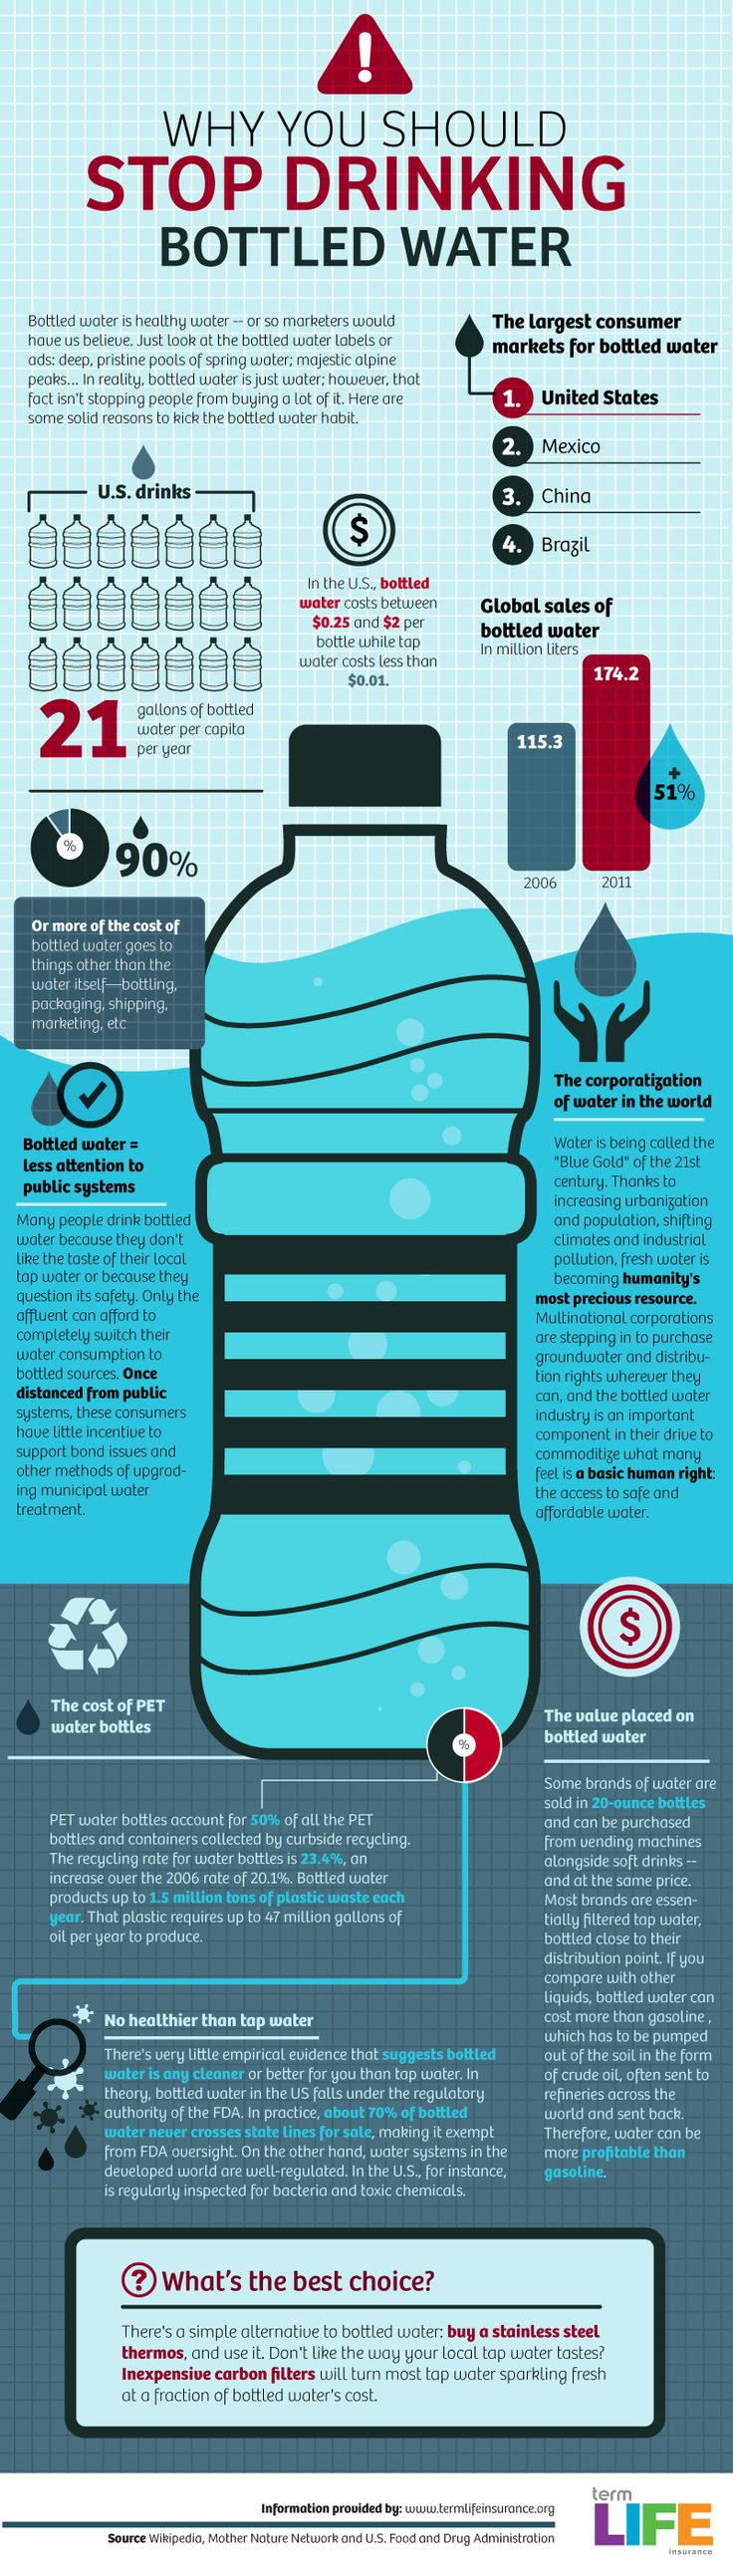 "You can add ""outsized carbon footprint"" to the list of what's wrong with bottled water."